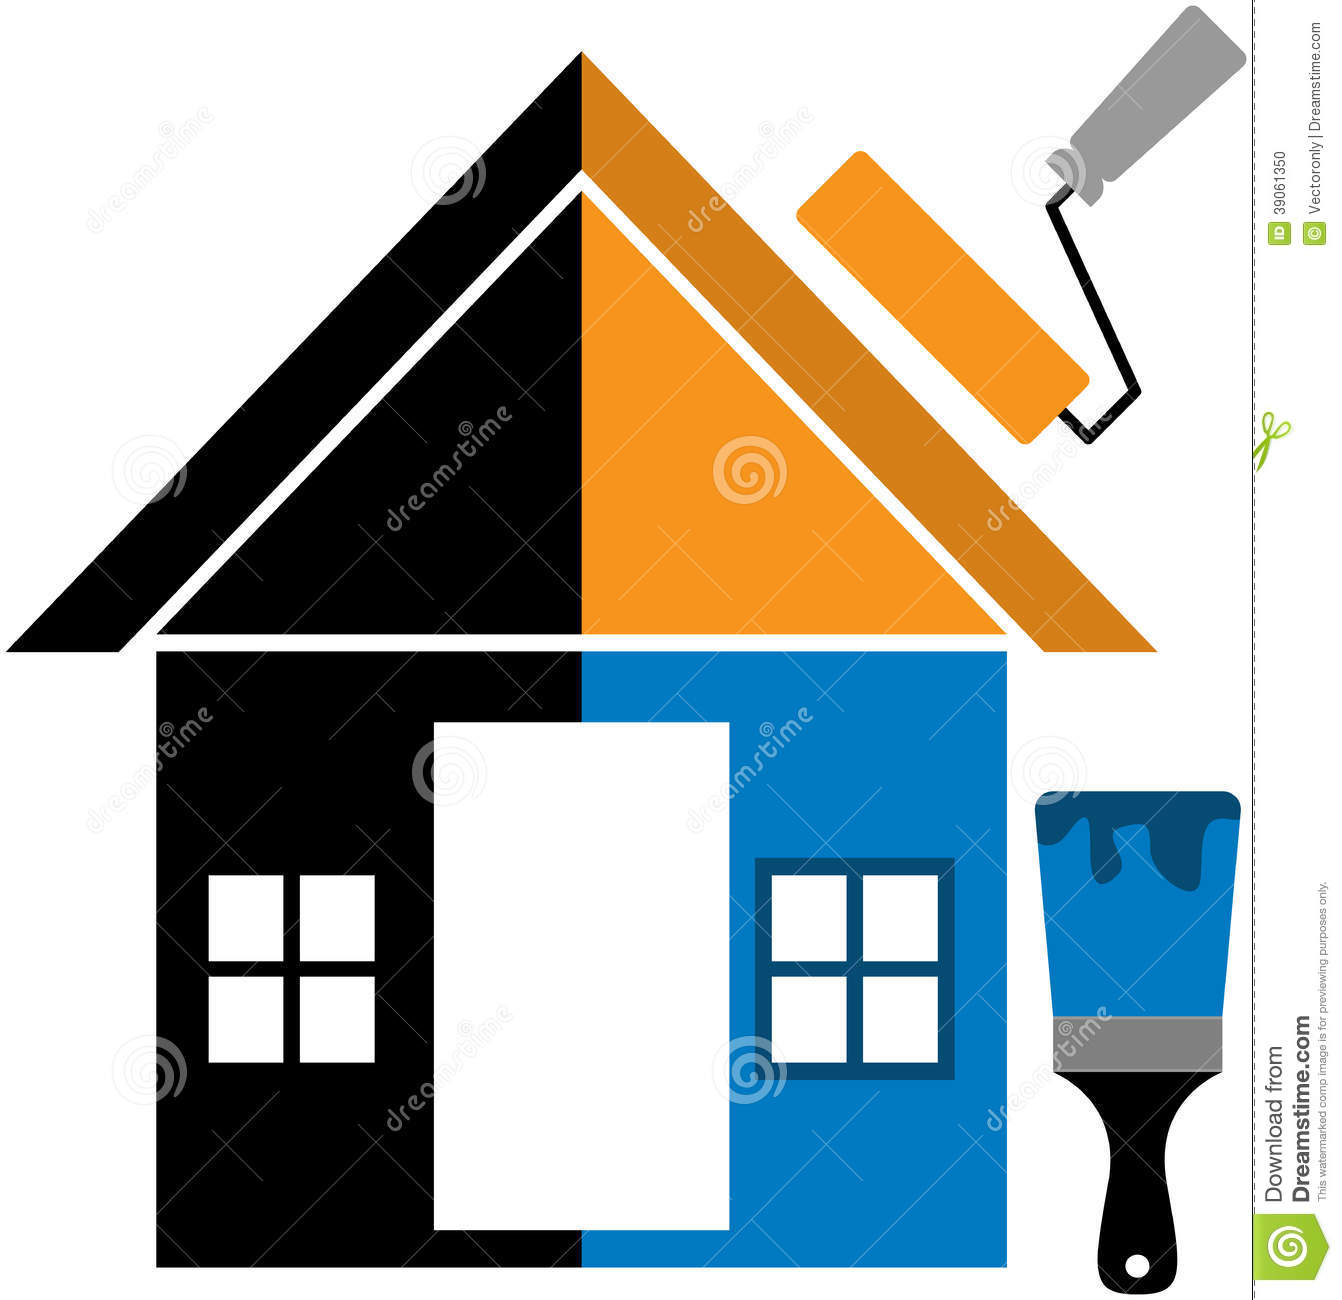 Home Painting home painting stock vector - image: 39061350